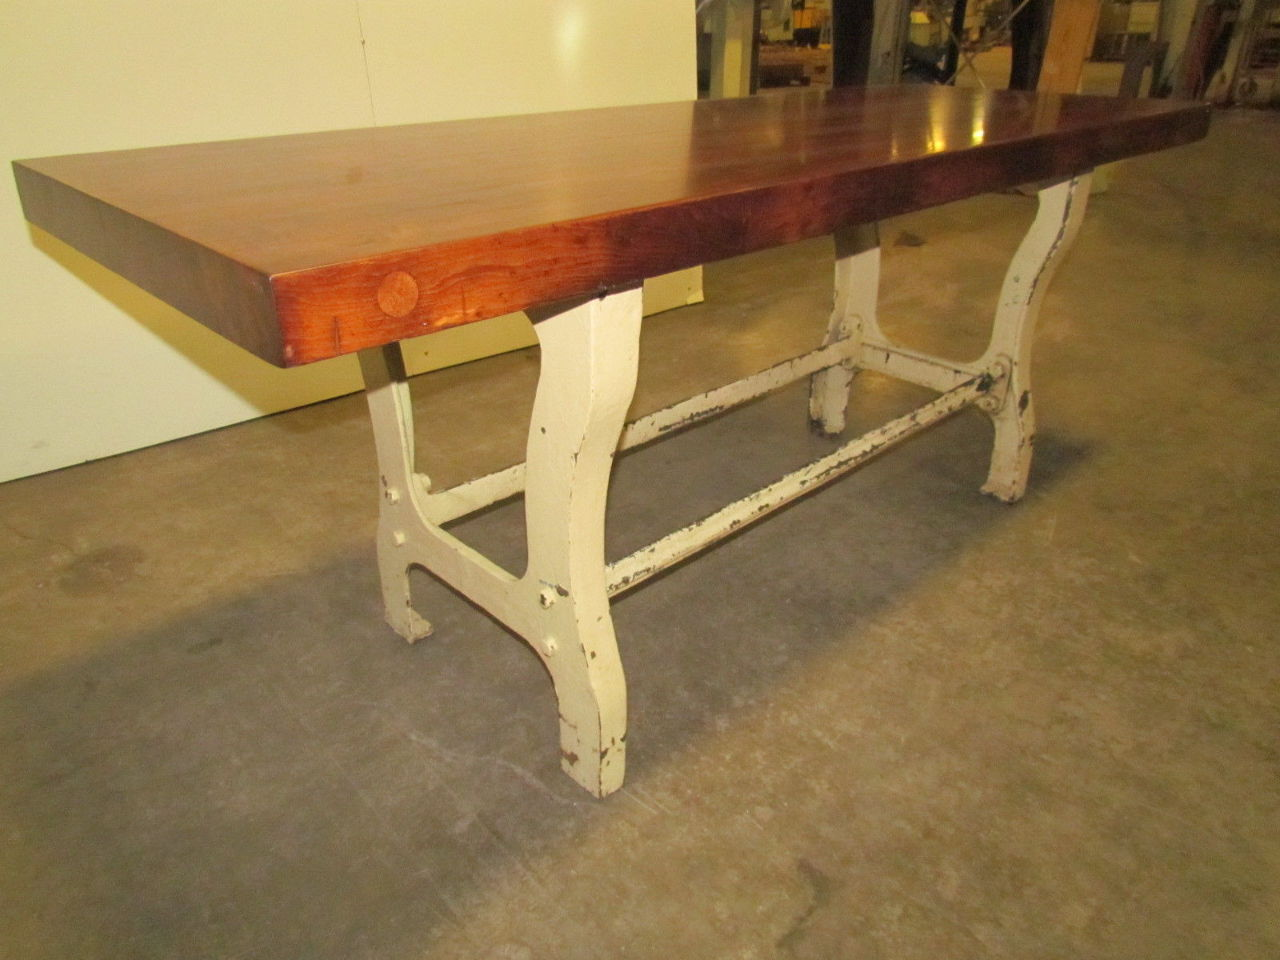 Vintage antique industrial 3 butcher block dining kitchen table cast iron legs ebay - Butcher block kitchen table set ...